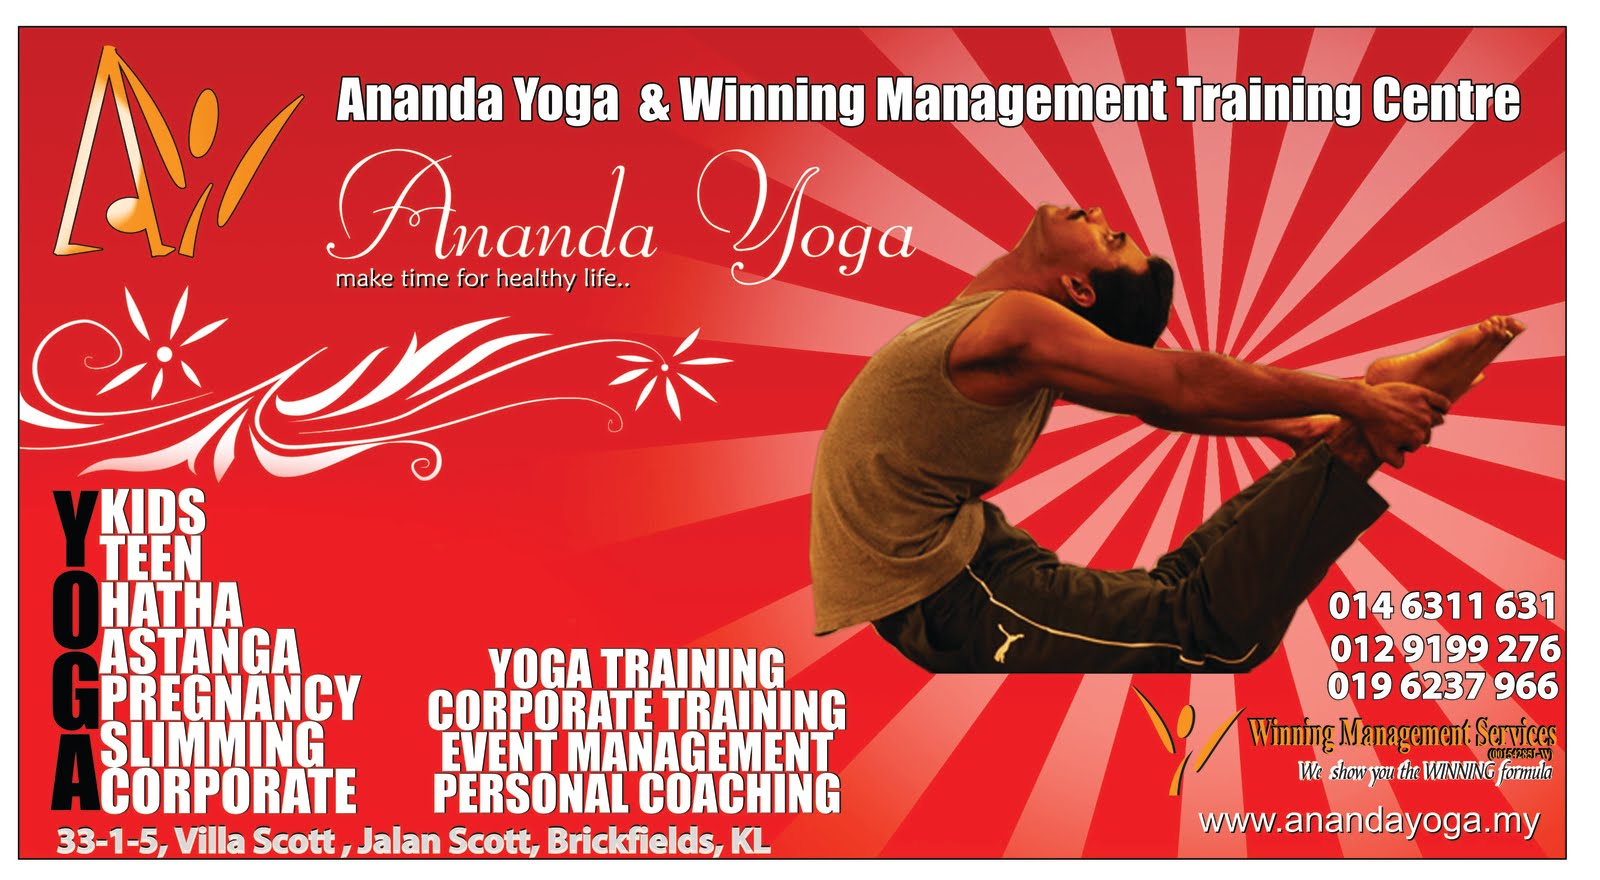 ANANDA YOGA LAUNCH DAY On 28 March 2010